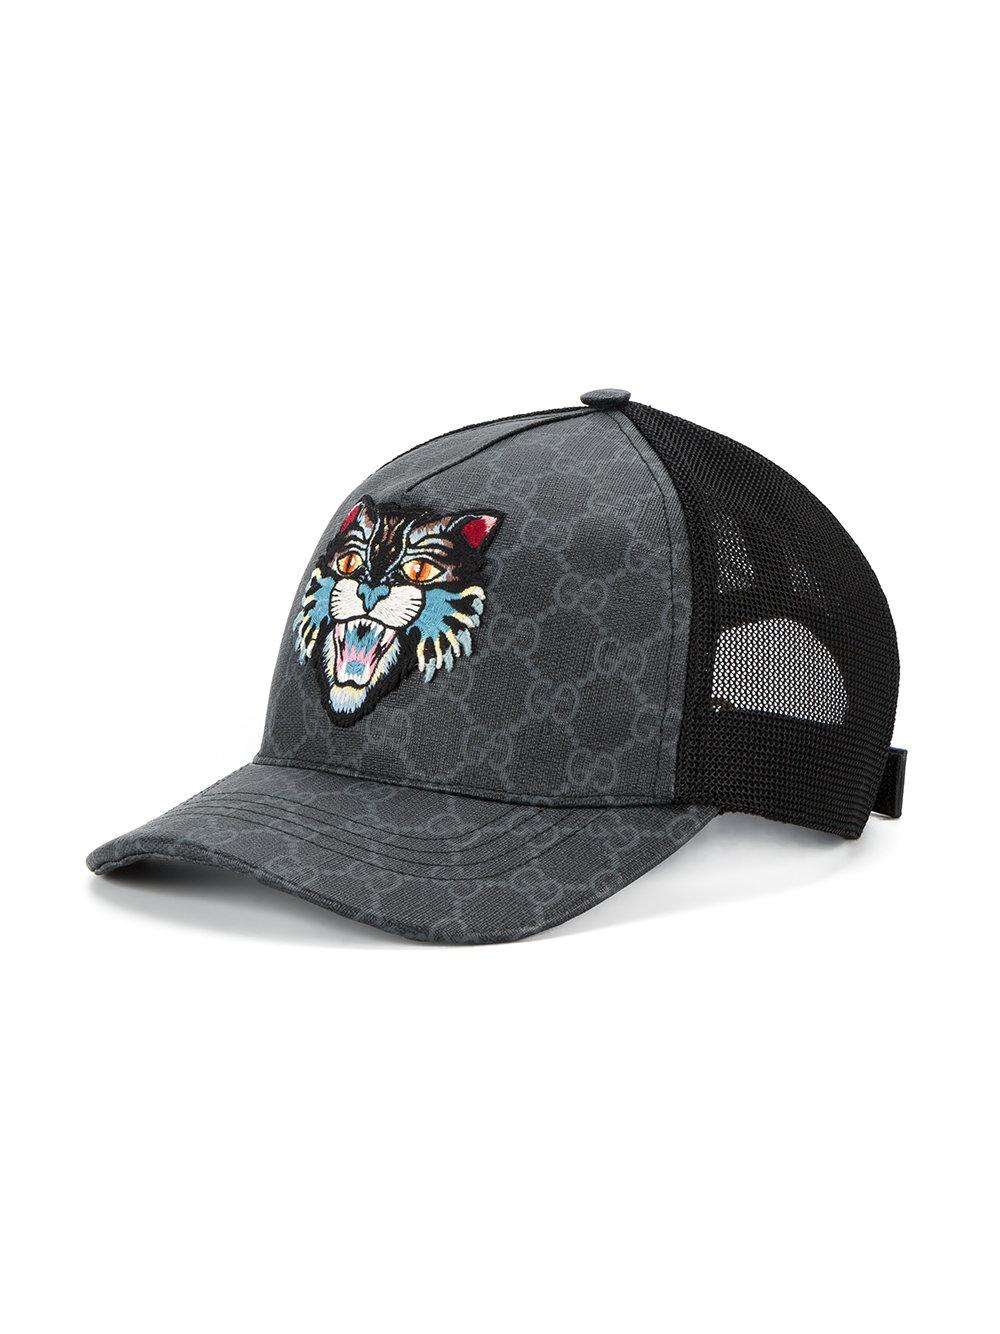 29897bd91f679 Gucci Gg Supreme Angry Cat Baseball Cap in Black for Men - Lyst